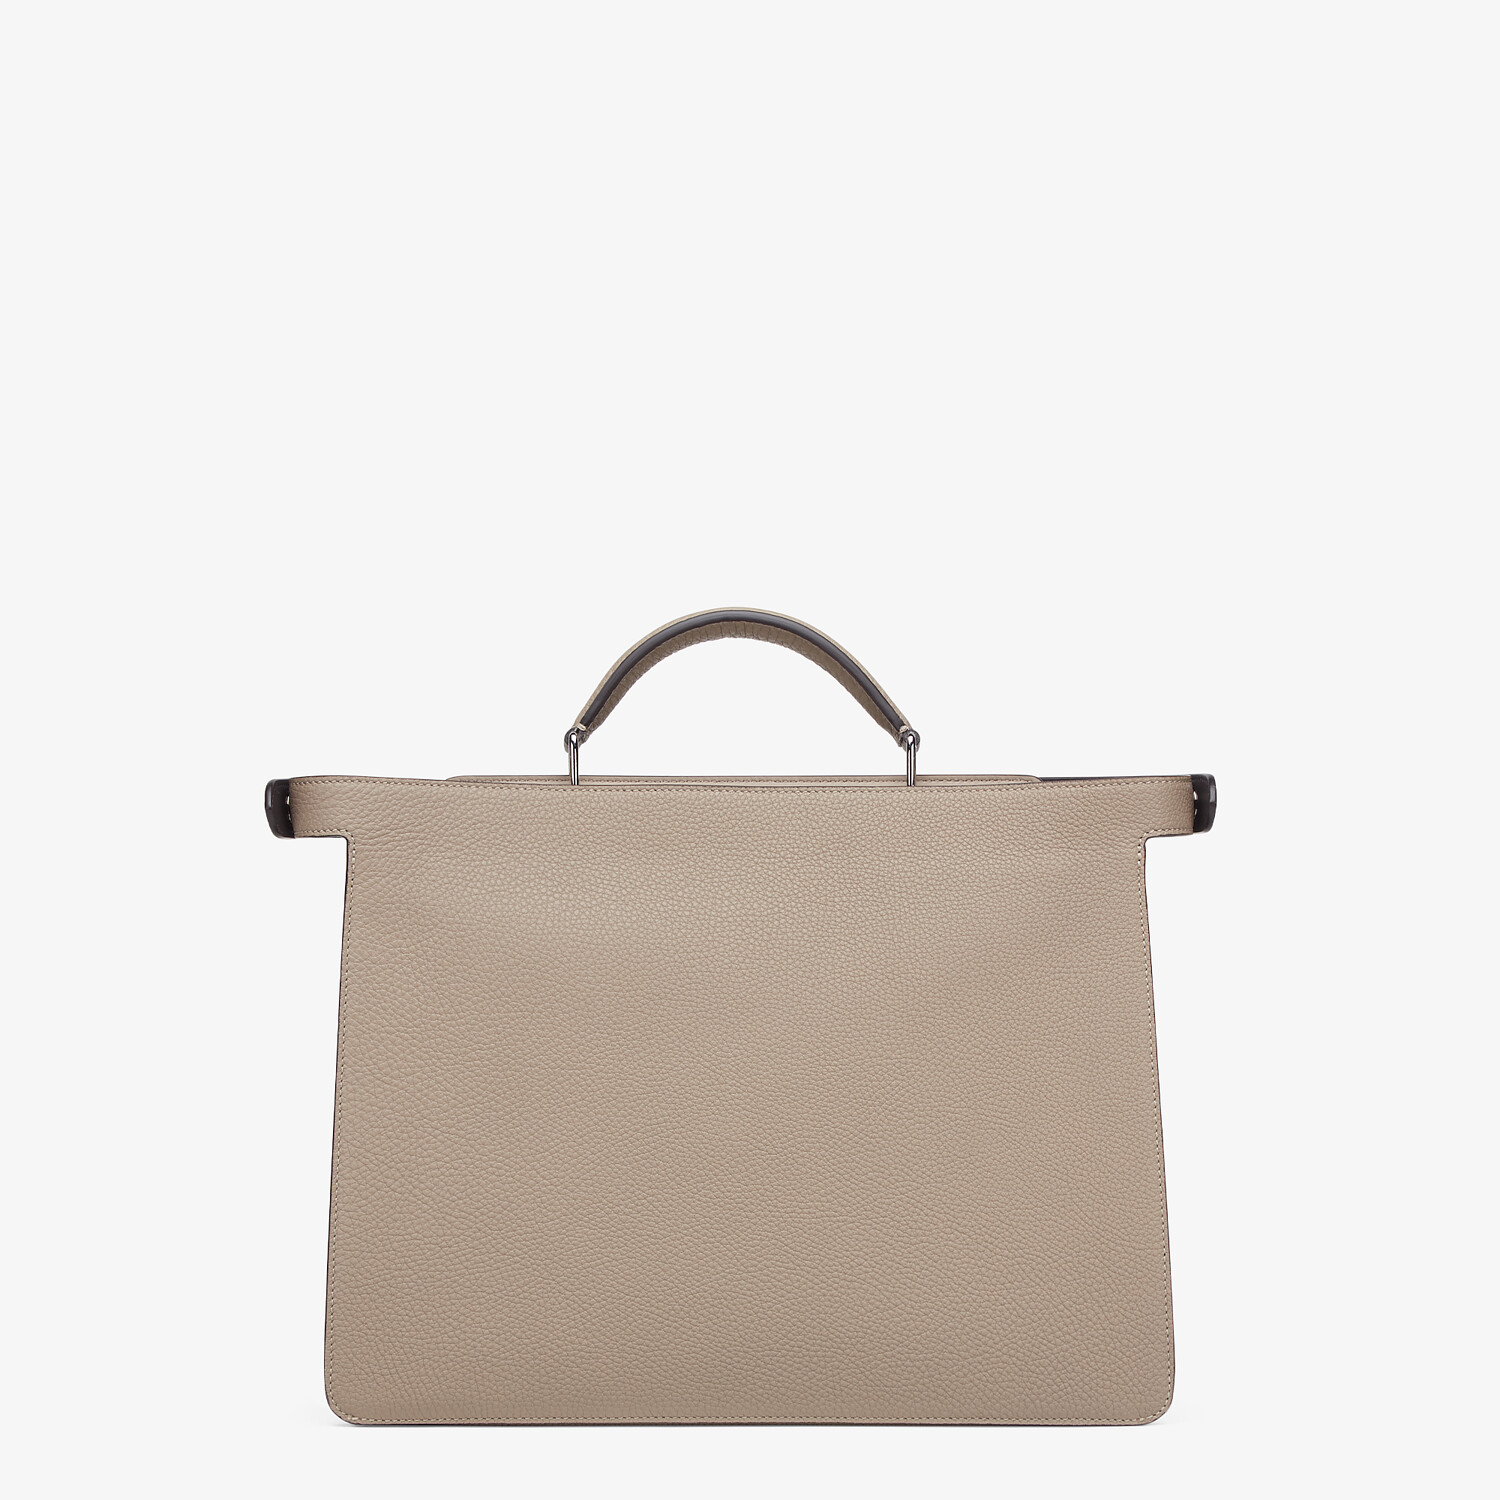 FENDI PEEKABOO ISEEU MEDIUM - Beige leather bag - view 4 detail